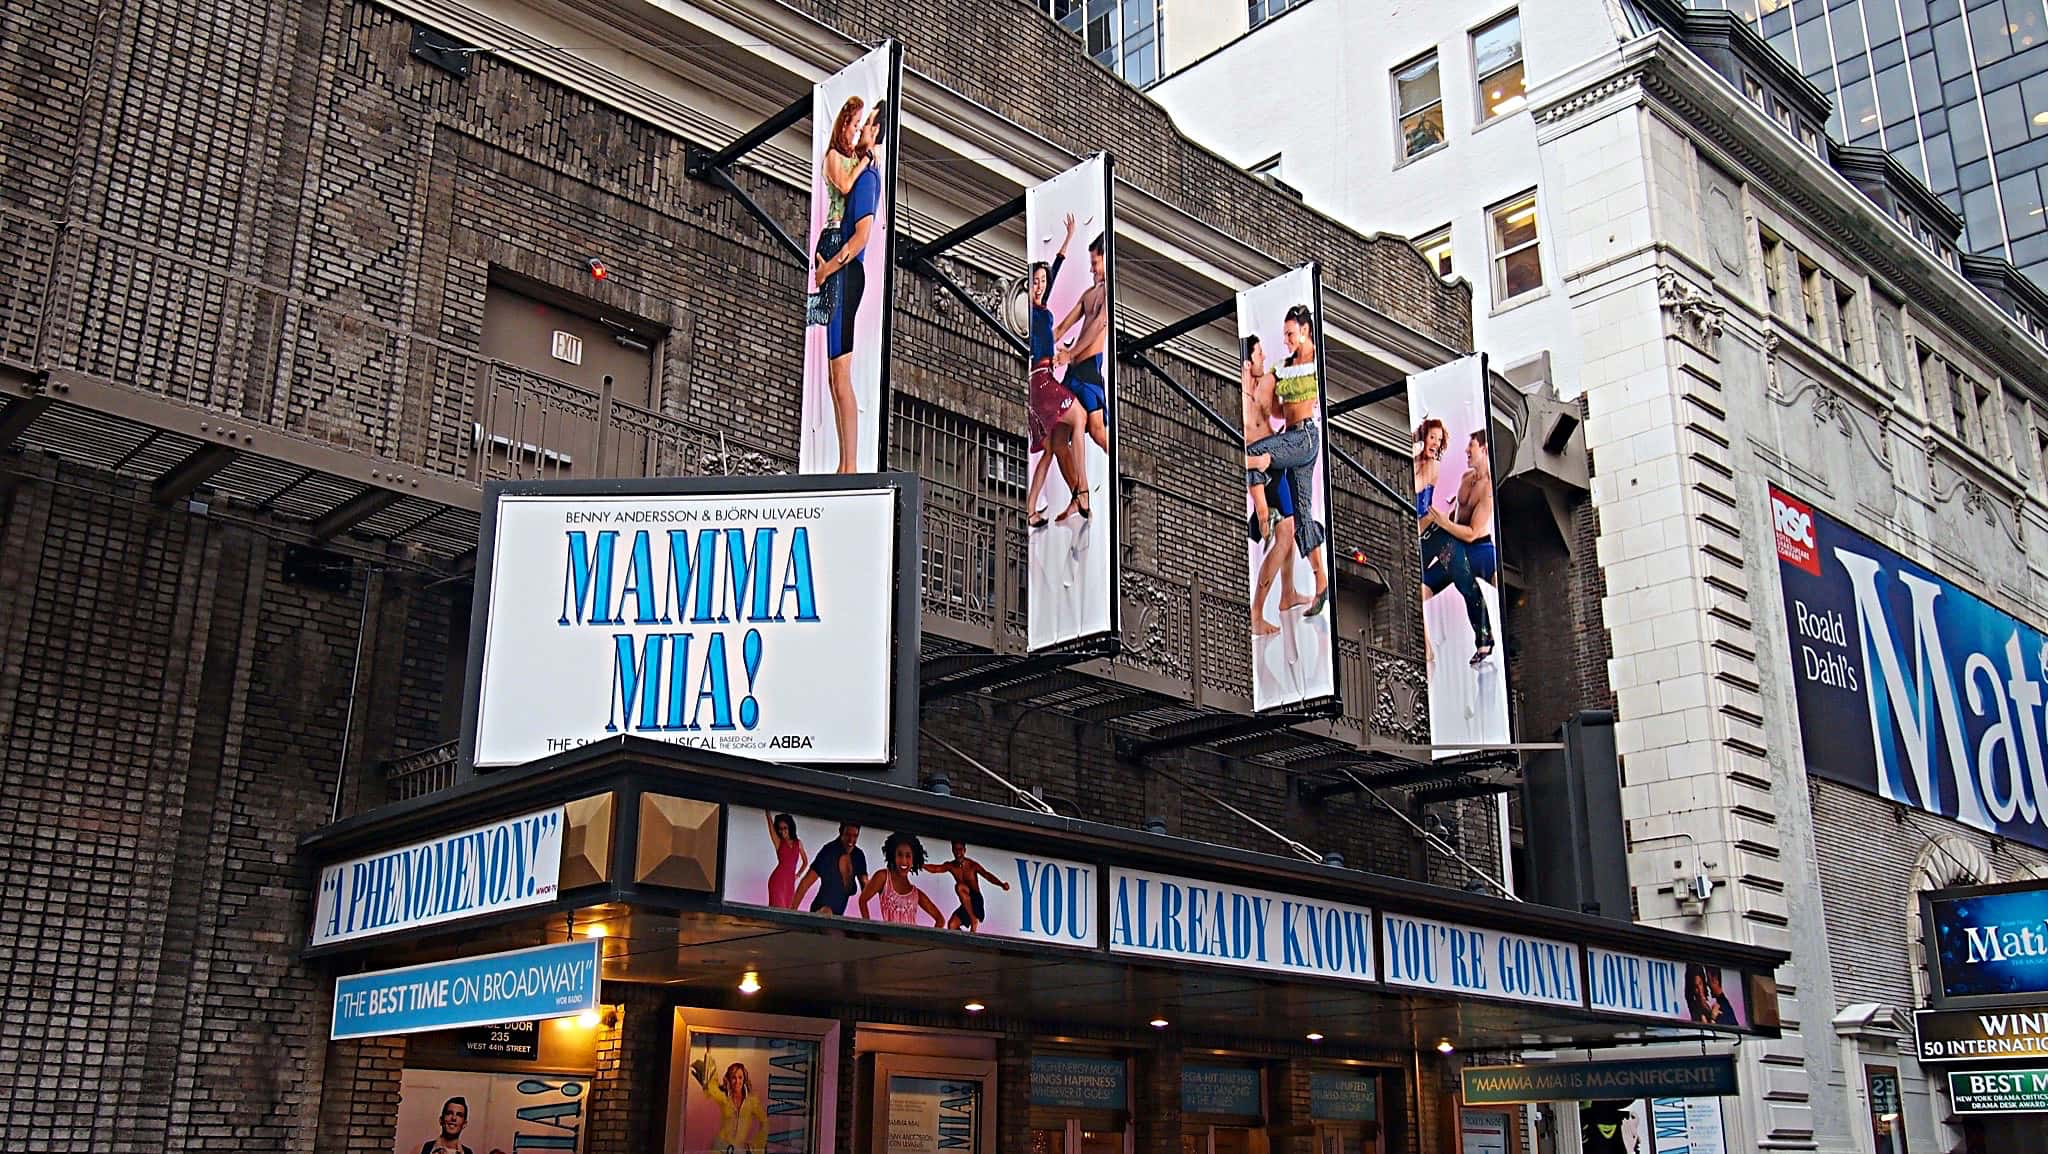 Ray Marchica's drum set setup for the Broadway production of Mamma Mia at the Broadhurst Theatre.